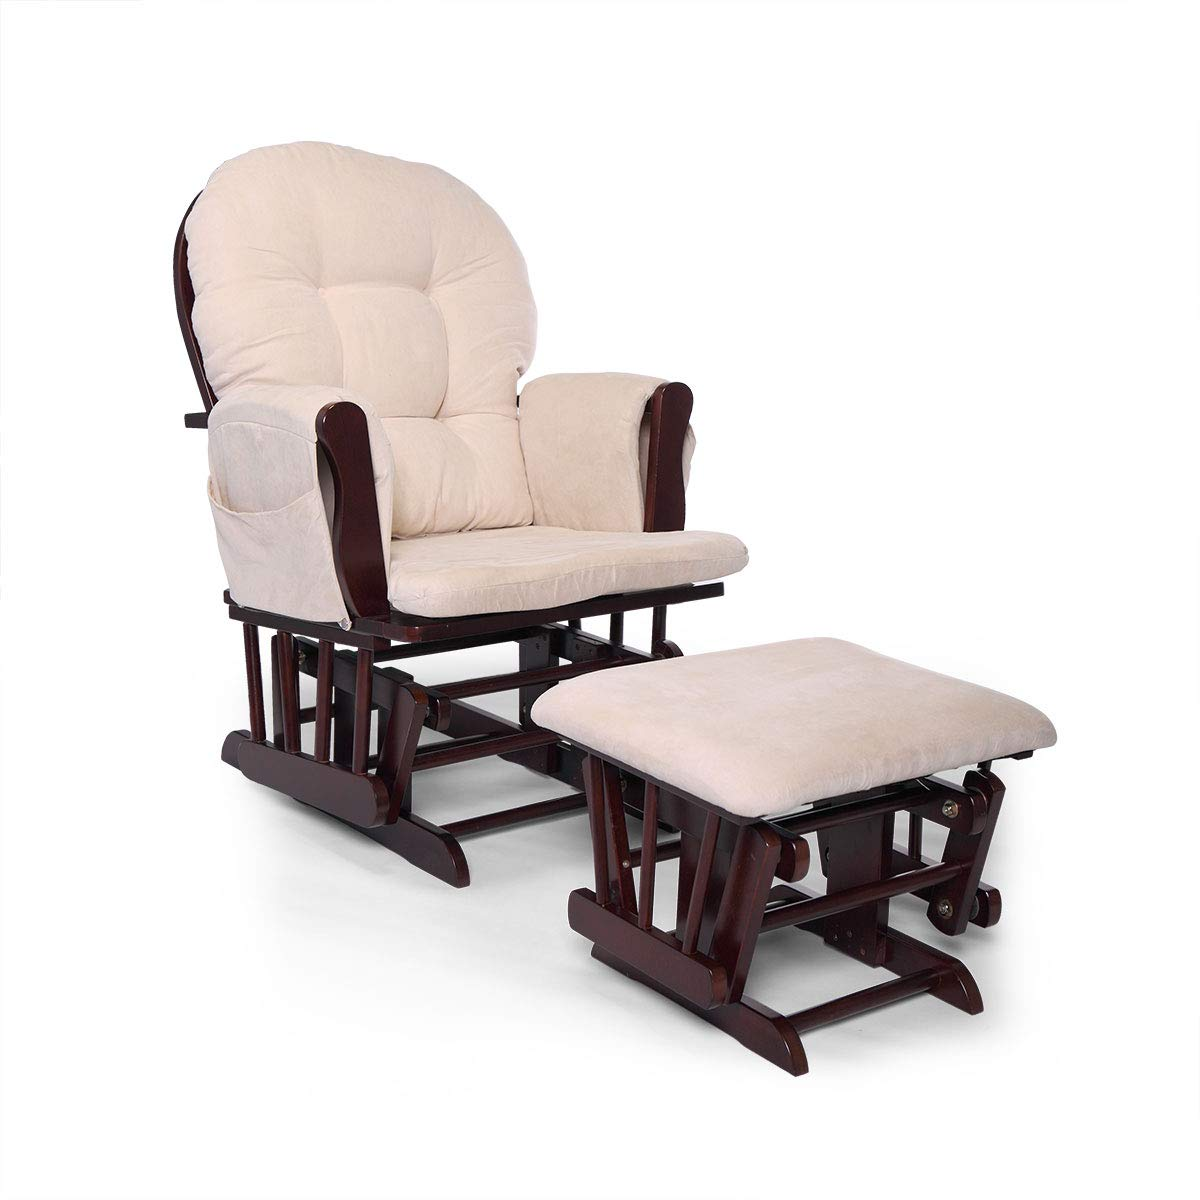 JAXPETY Bow Back Glider and Ottoman with Beige Cushions Beech Wood Rocking Nursing Chair Relax Chair Set by JAXPETY